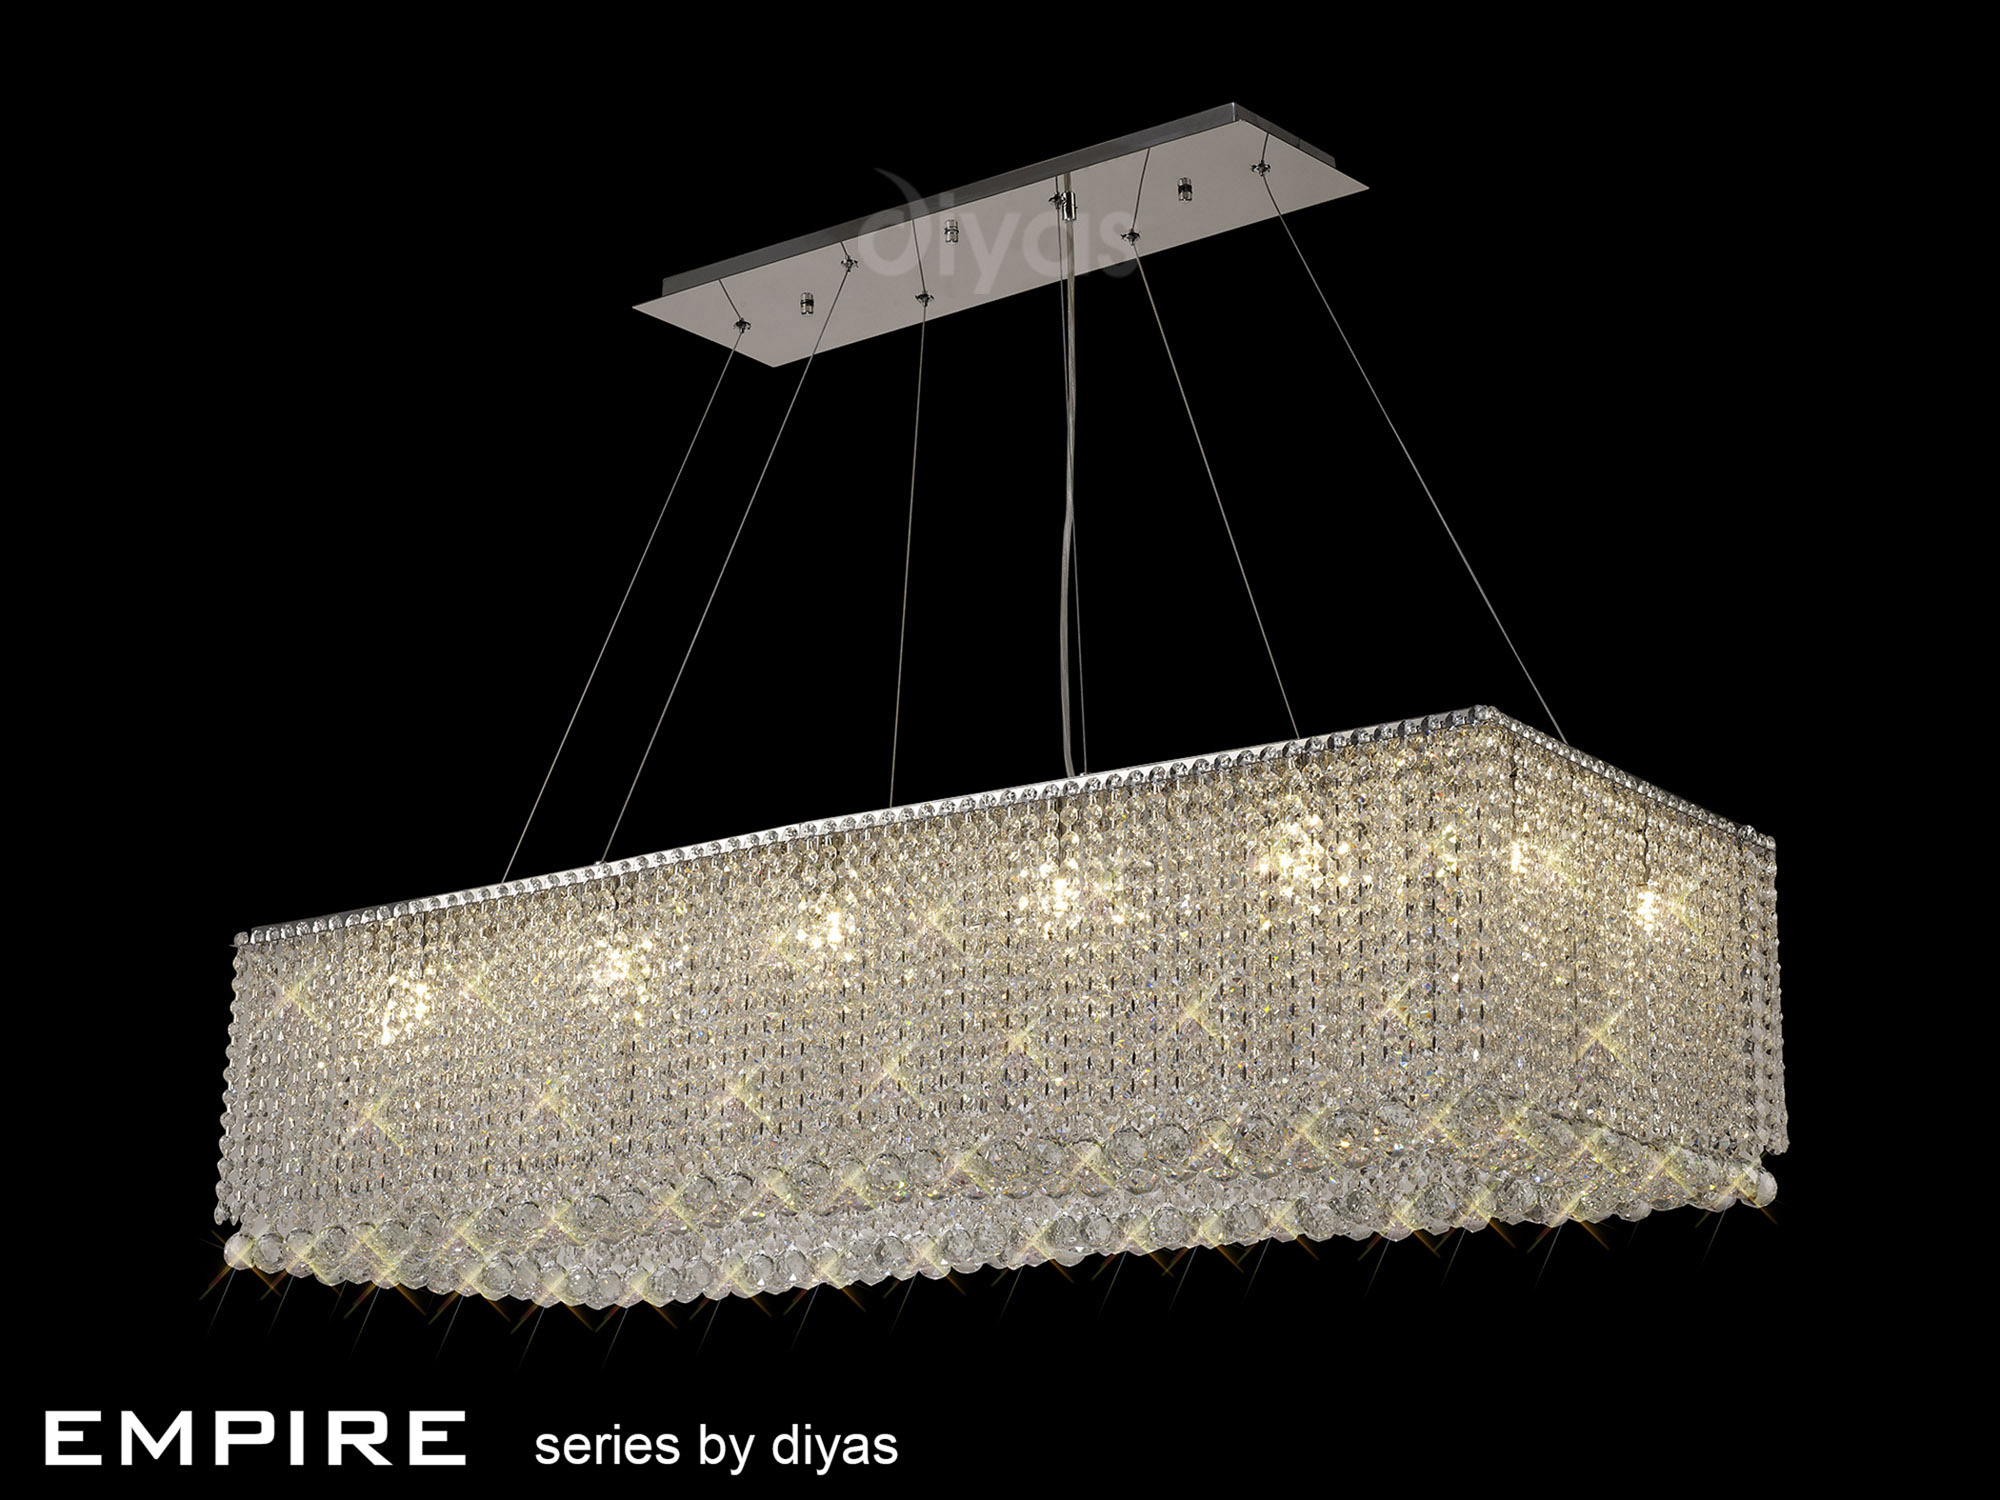 Empire Crystal Ceiling Lights Diyas Contemporary Crystal Ceiling Lights